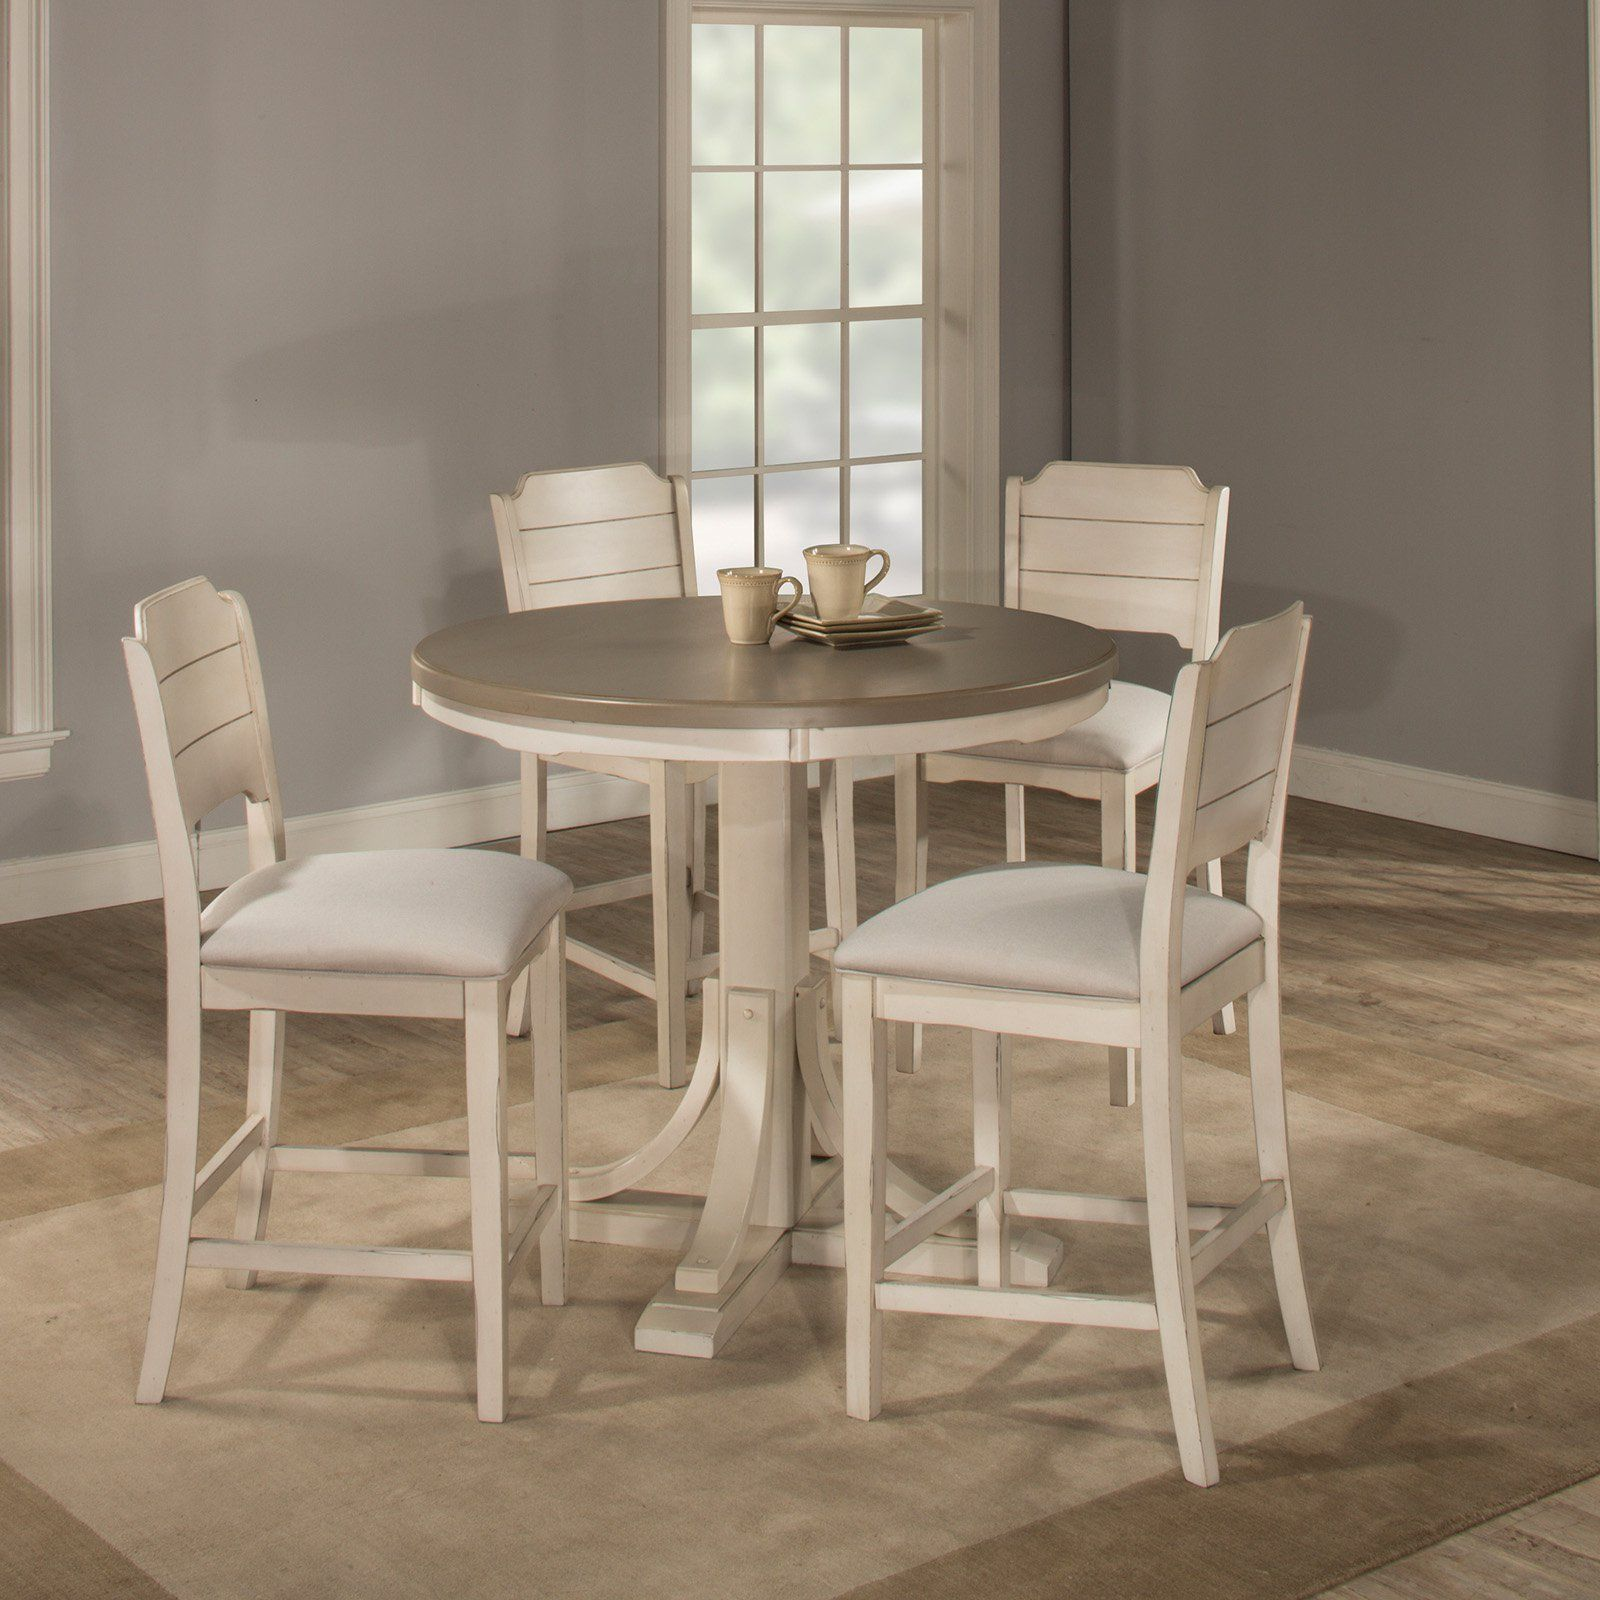 Hillsdale Clarion 5 Piece Round Counter Dining Set With Open Back